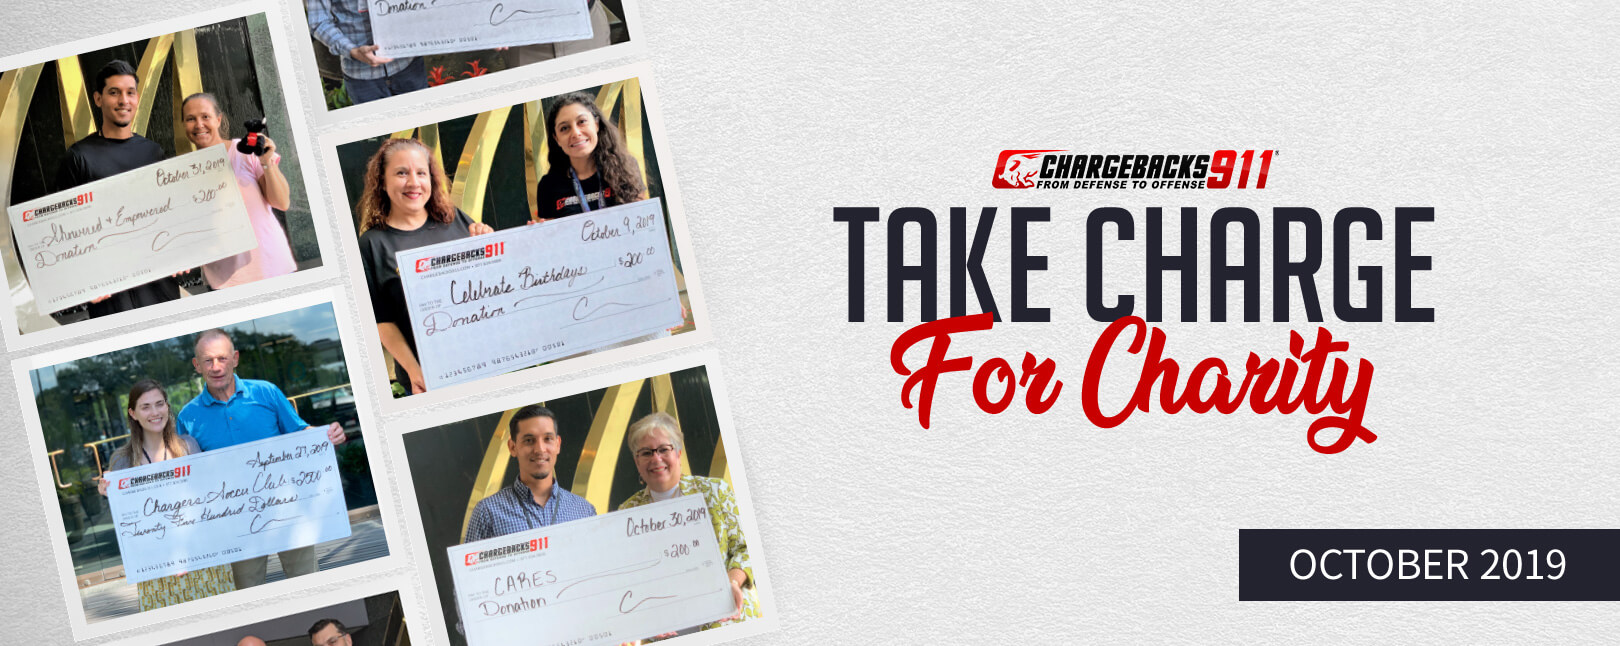 Take Charge for Charity - October 2019